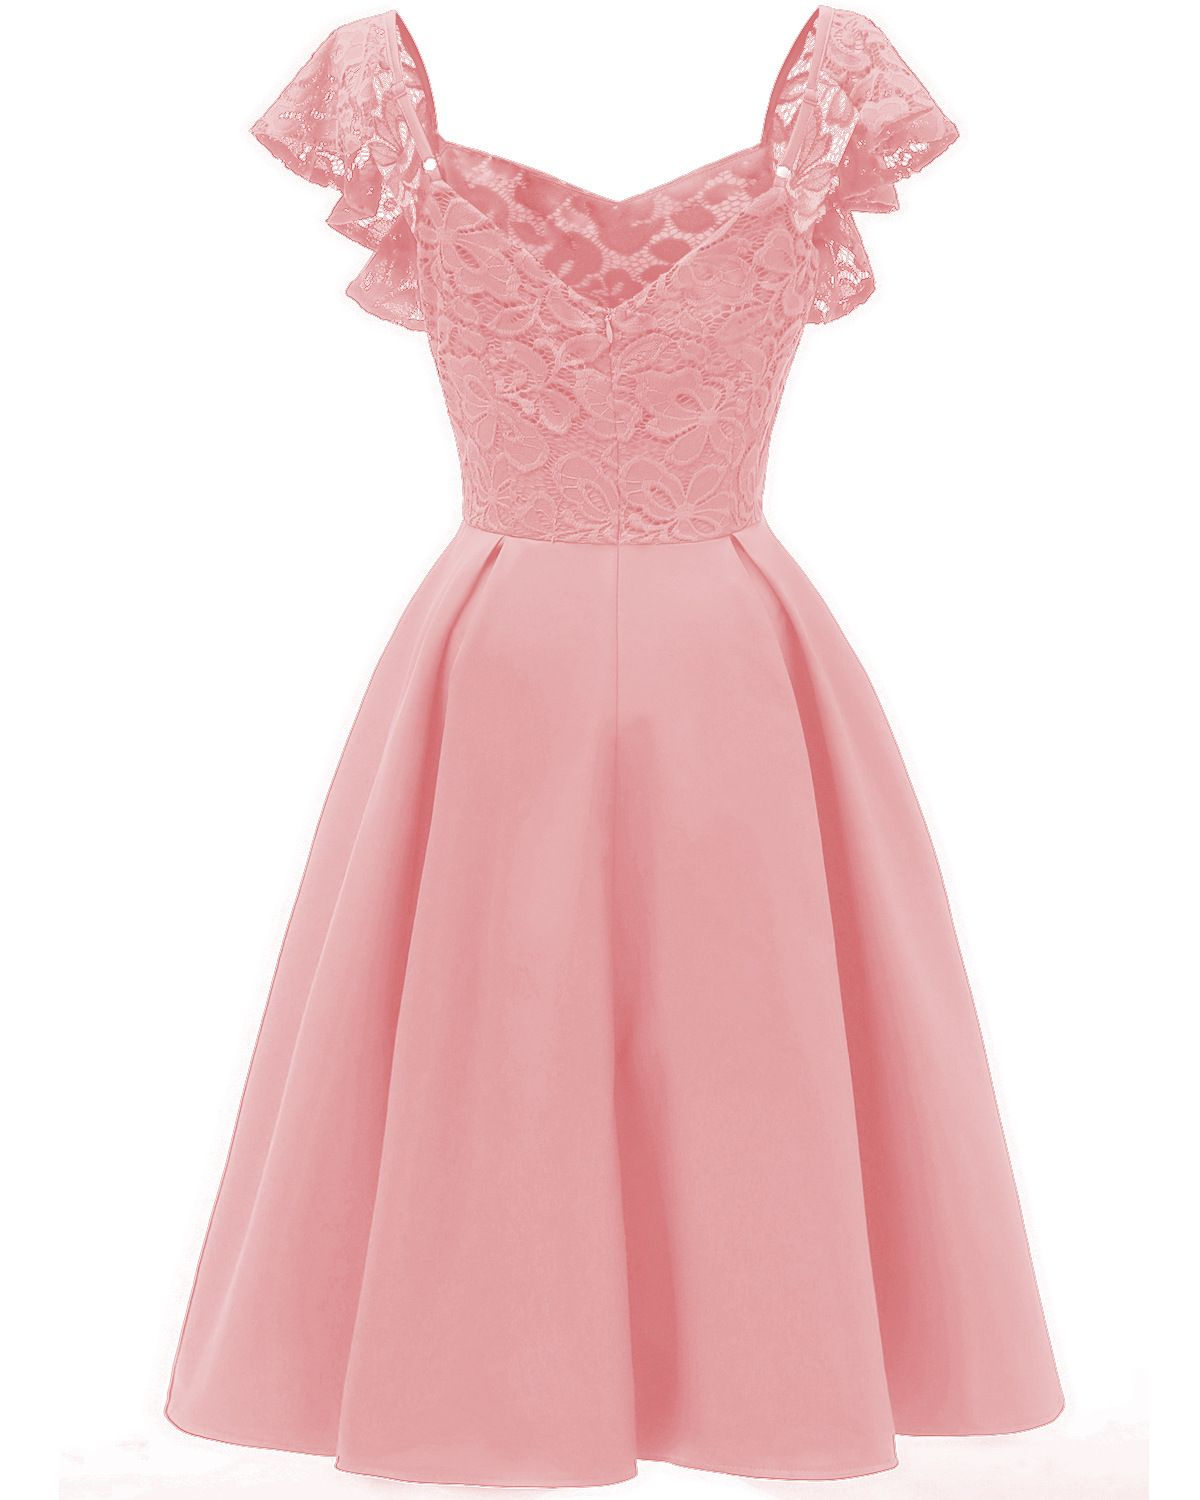 Women Casual Dress Vintage Ruffle Lace Cap Sleeve A Line Work Office Party Dress Pink Pink Prom Dresses Short Cocktail Dress Lace Chiffon Lace Dress [ 1500 x 1200 Pixel ]